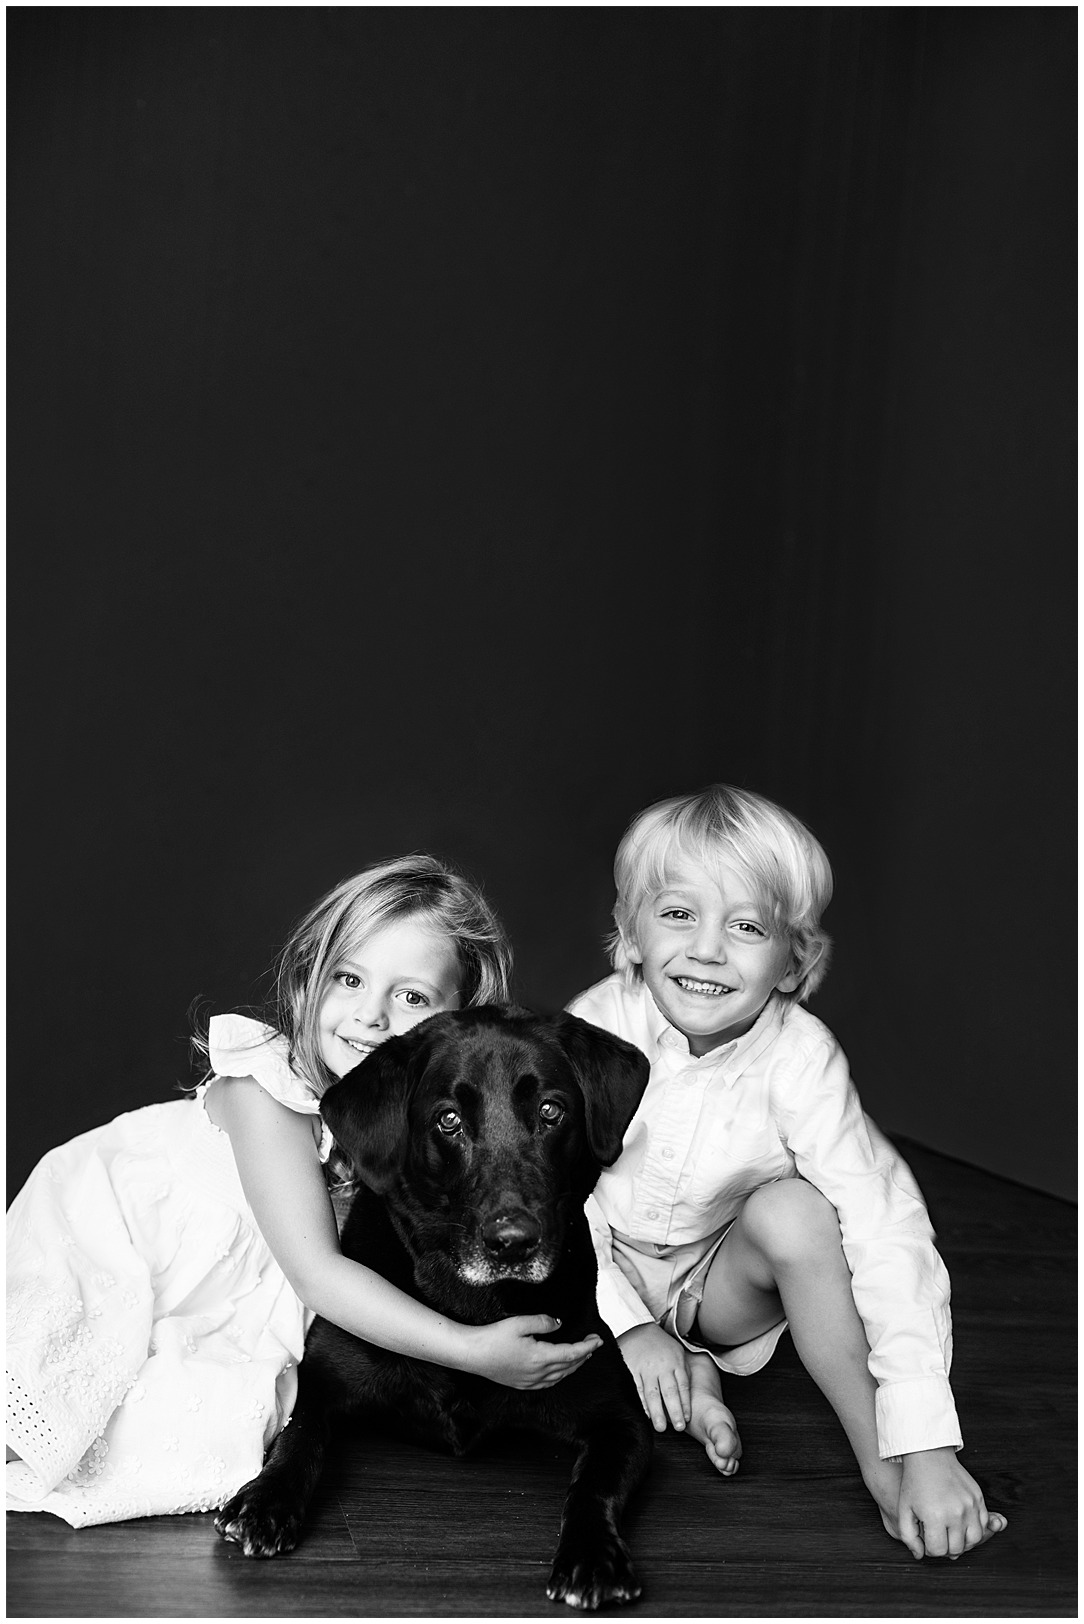 Tessa_marie_photography_atlanta_childrens_fine_art_black_and_white_photography_family_photographer_0034.jpg